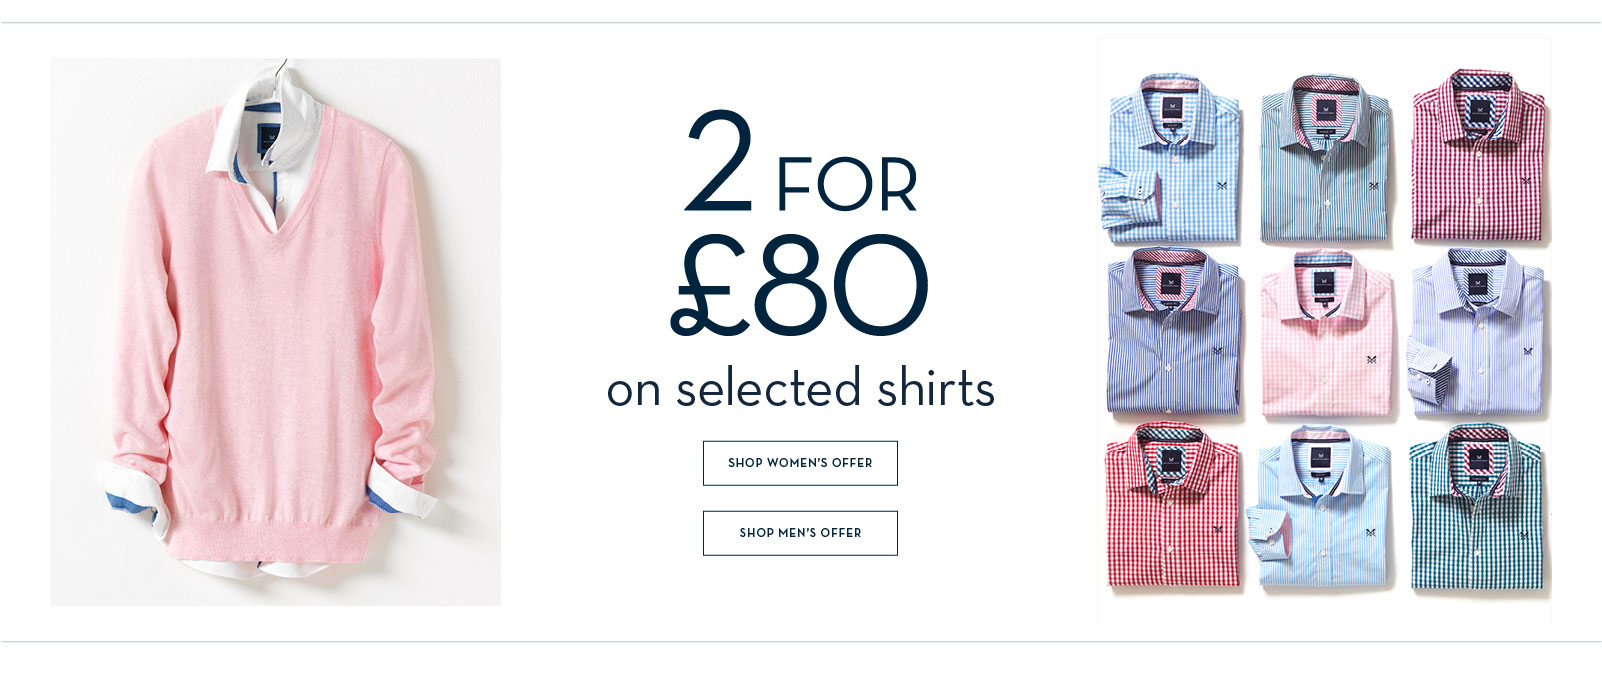 2 for £80 Selected Shirts